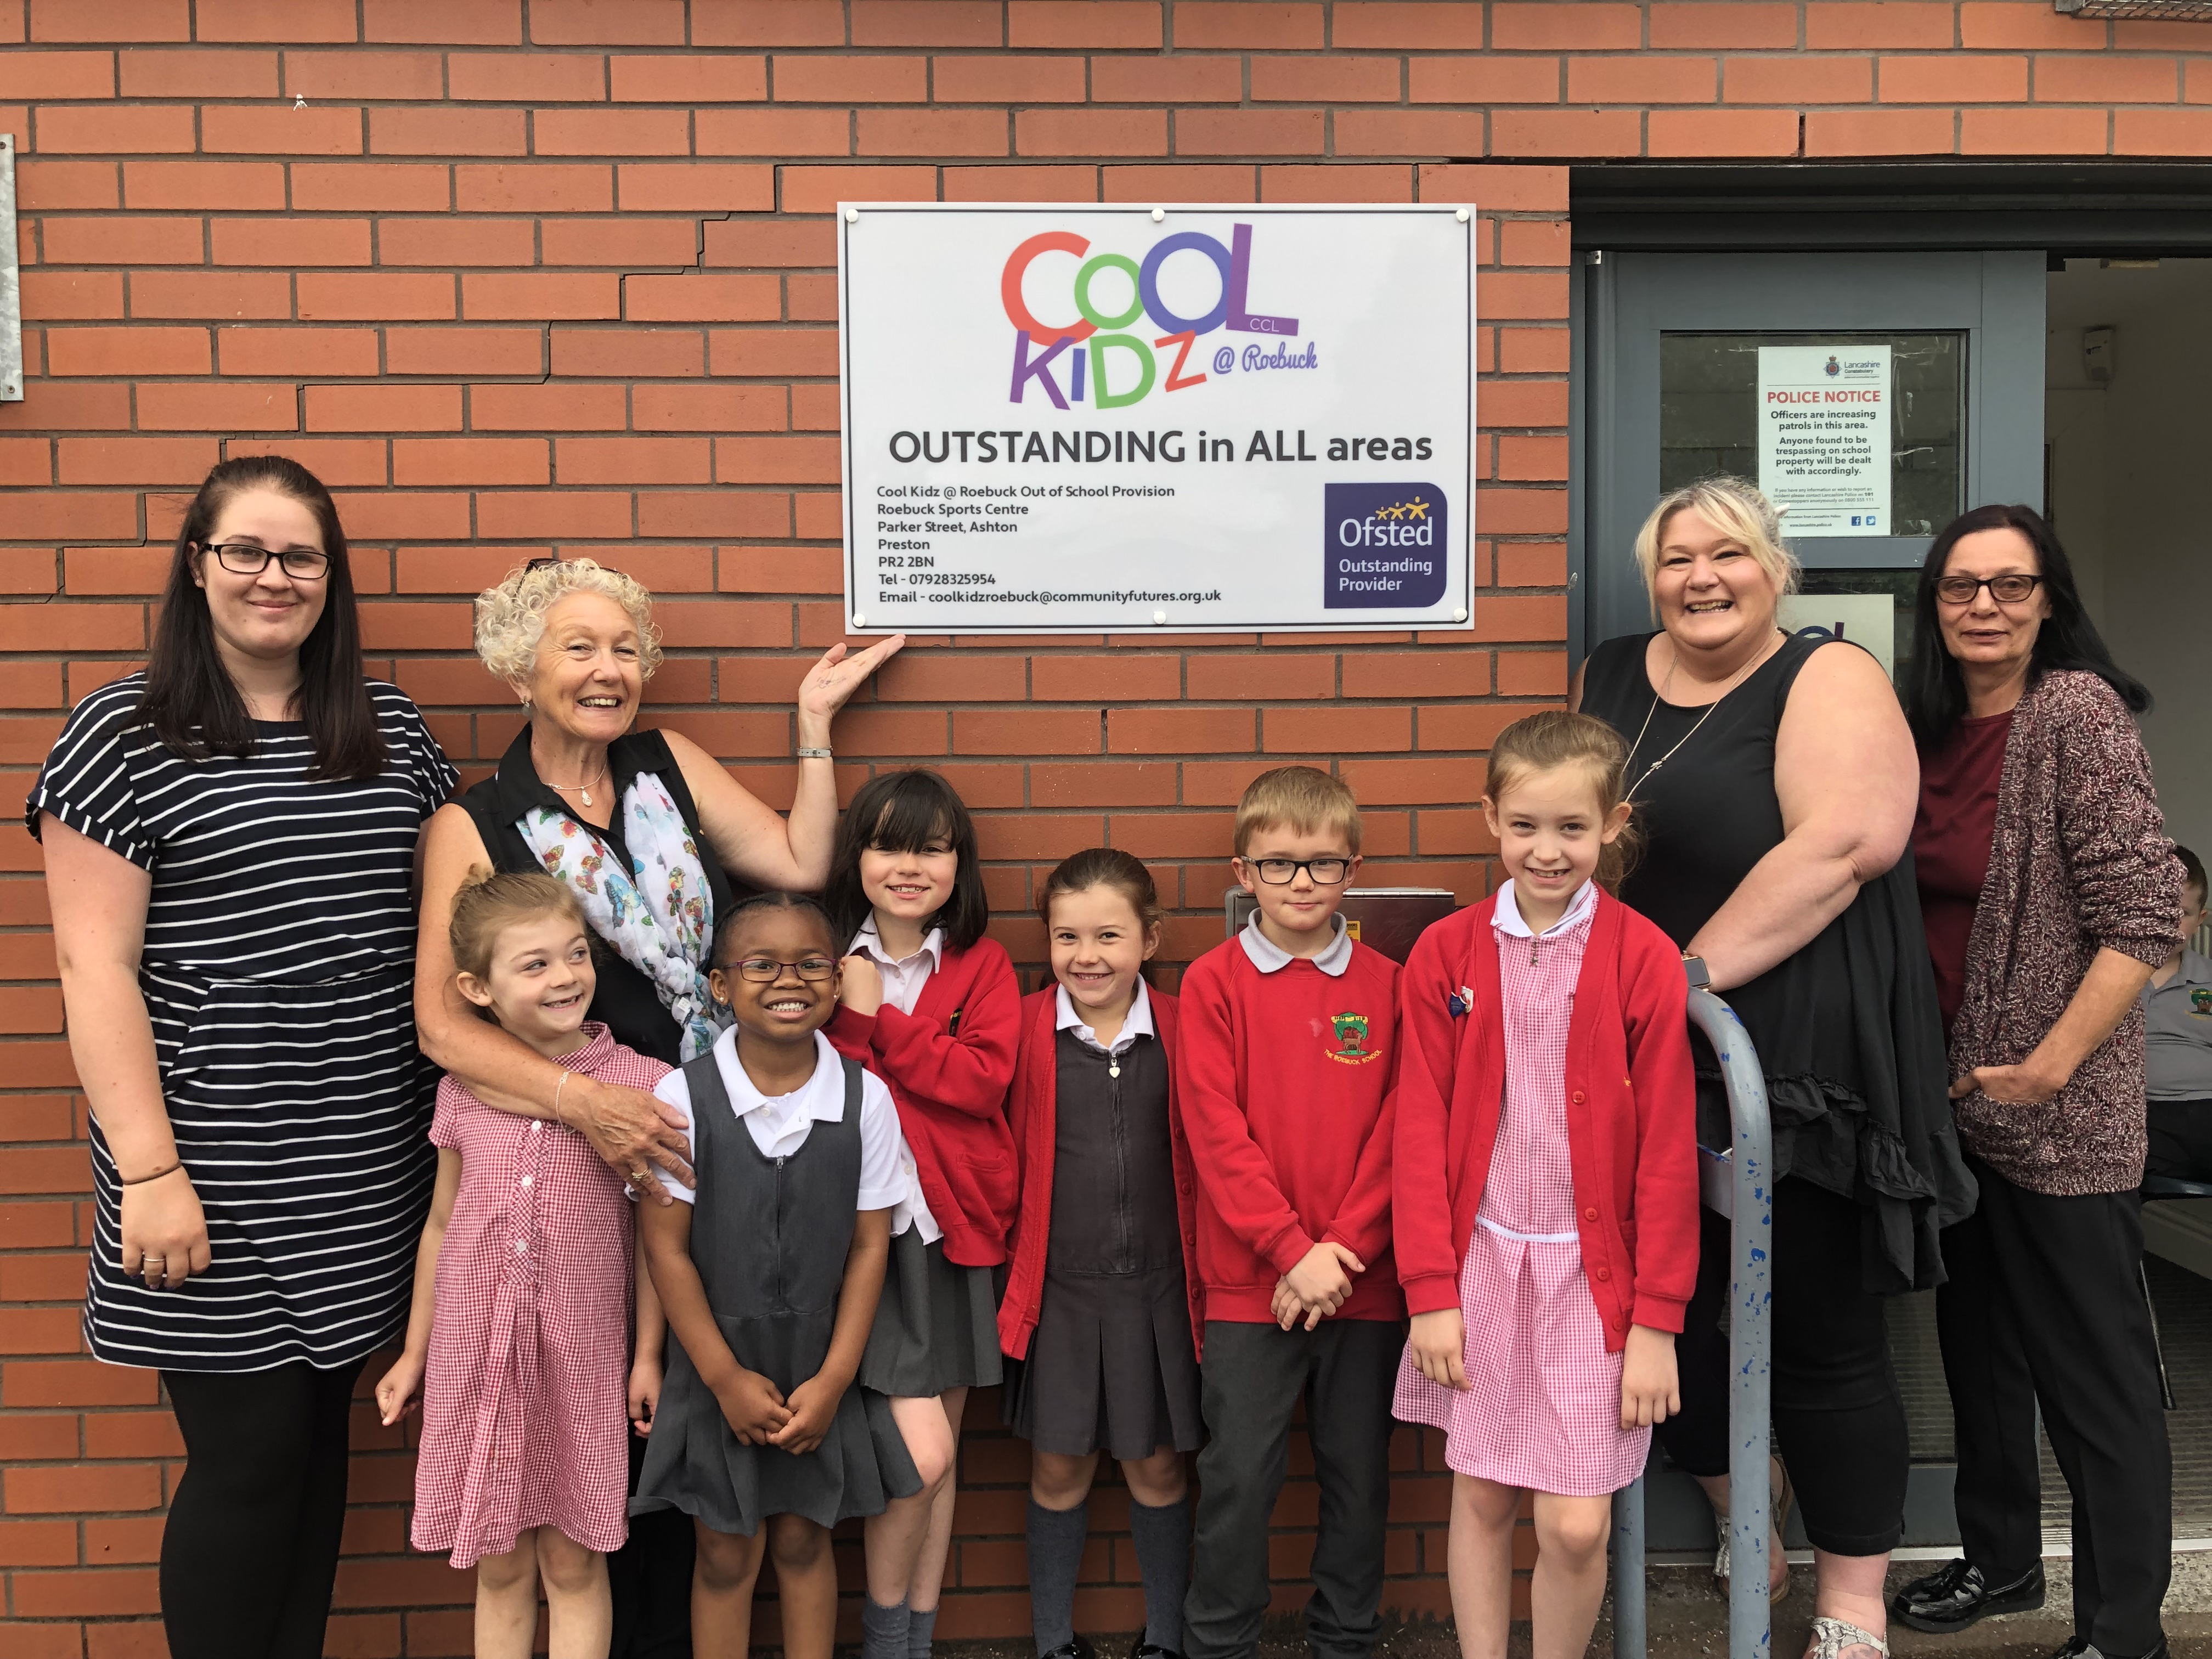 Cool Kidz Roebuck showing off their Ofsted outstanding sign